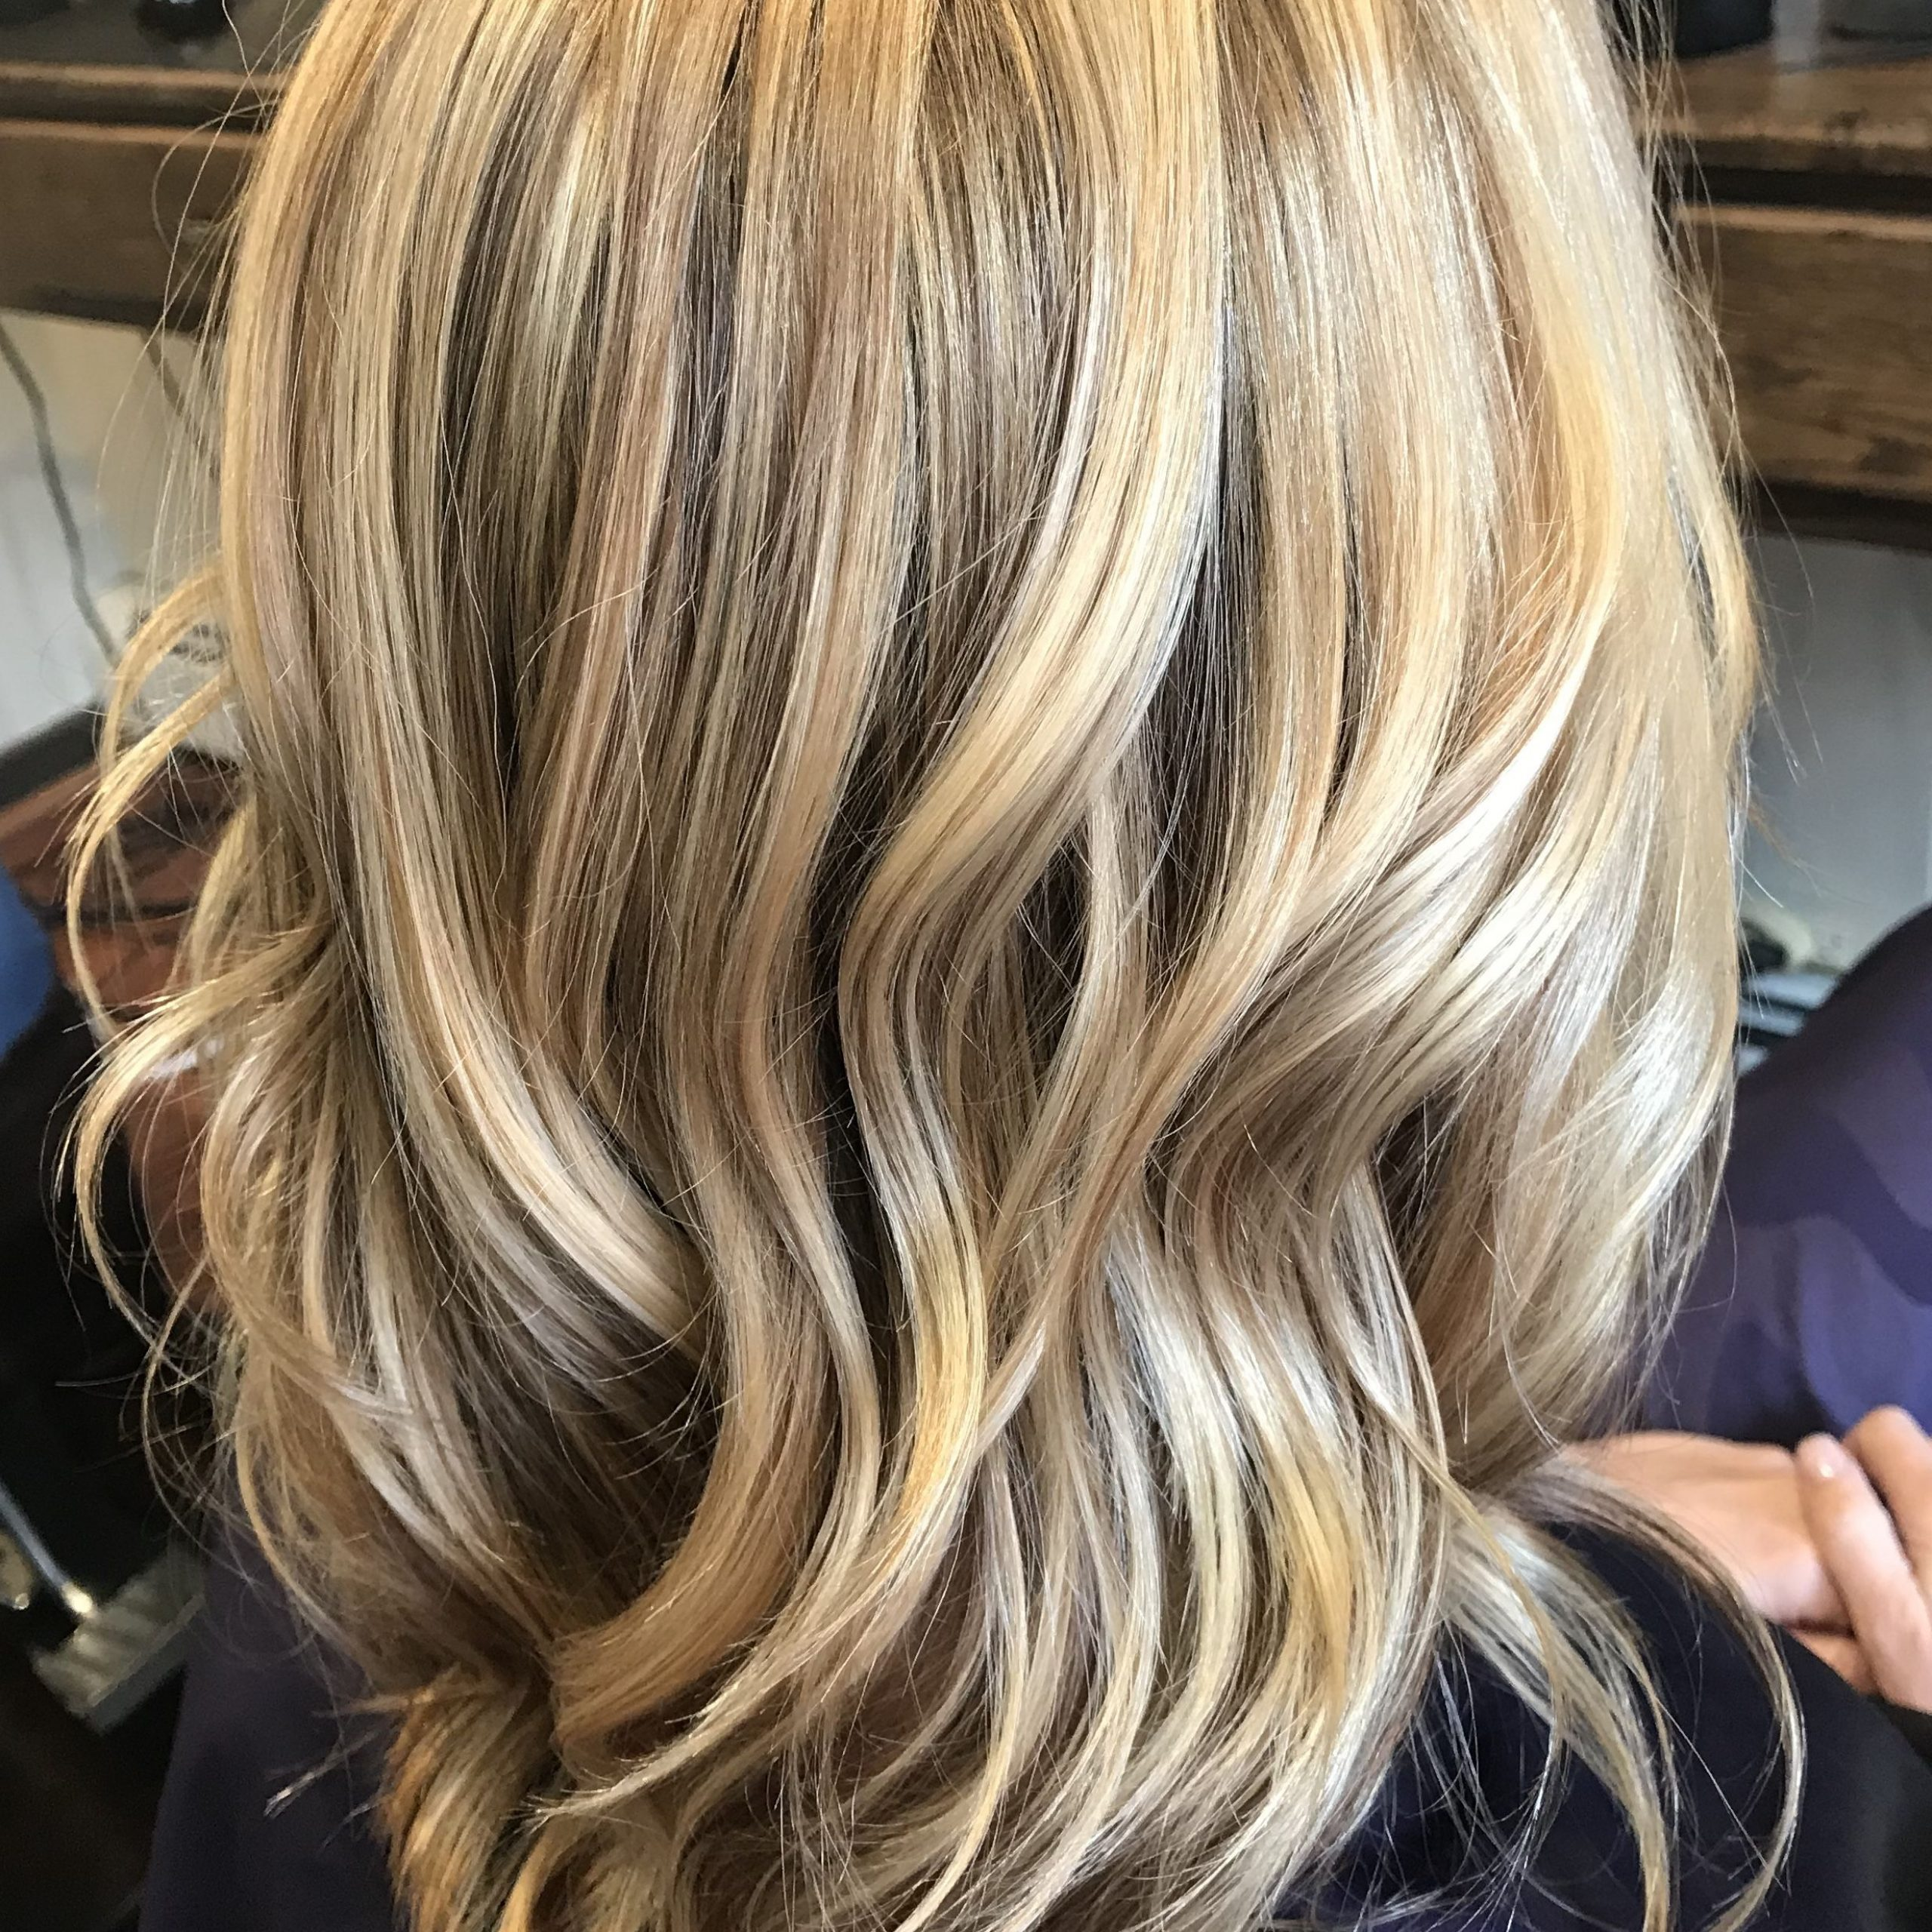 Blonde With Regard To Well Known Feathered Bangs Hairstyles With Bright Highlights (View 18 of 20)